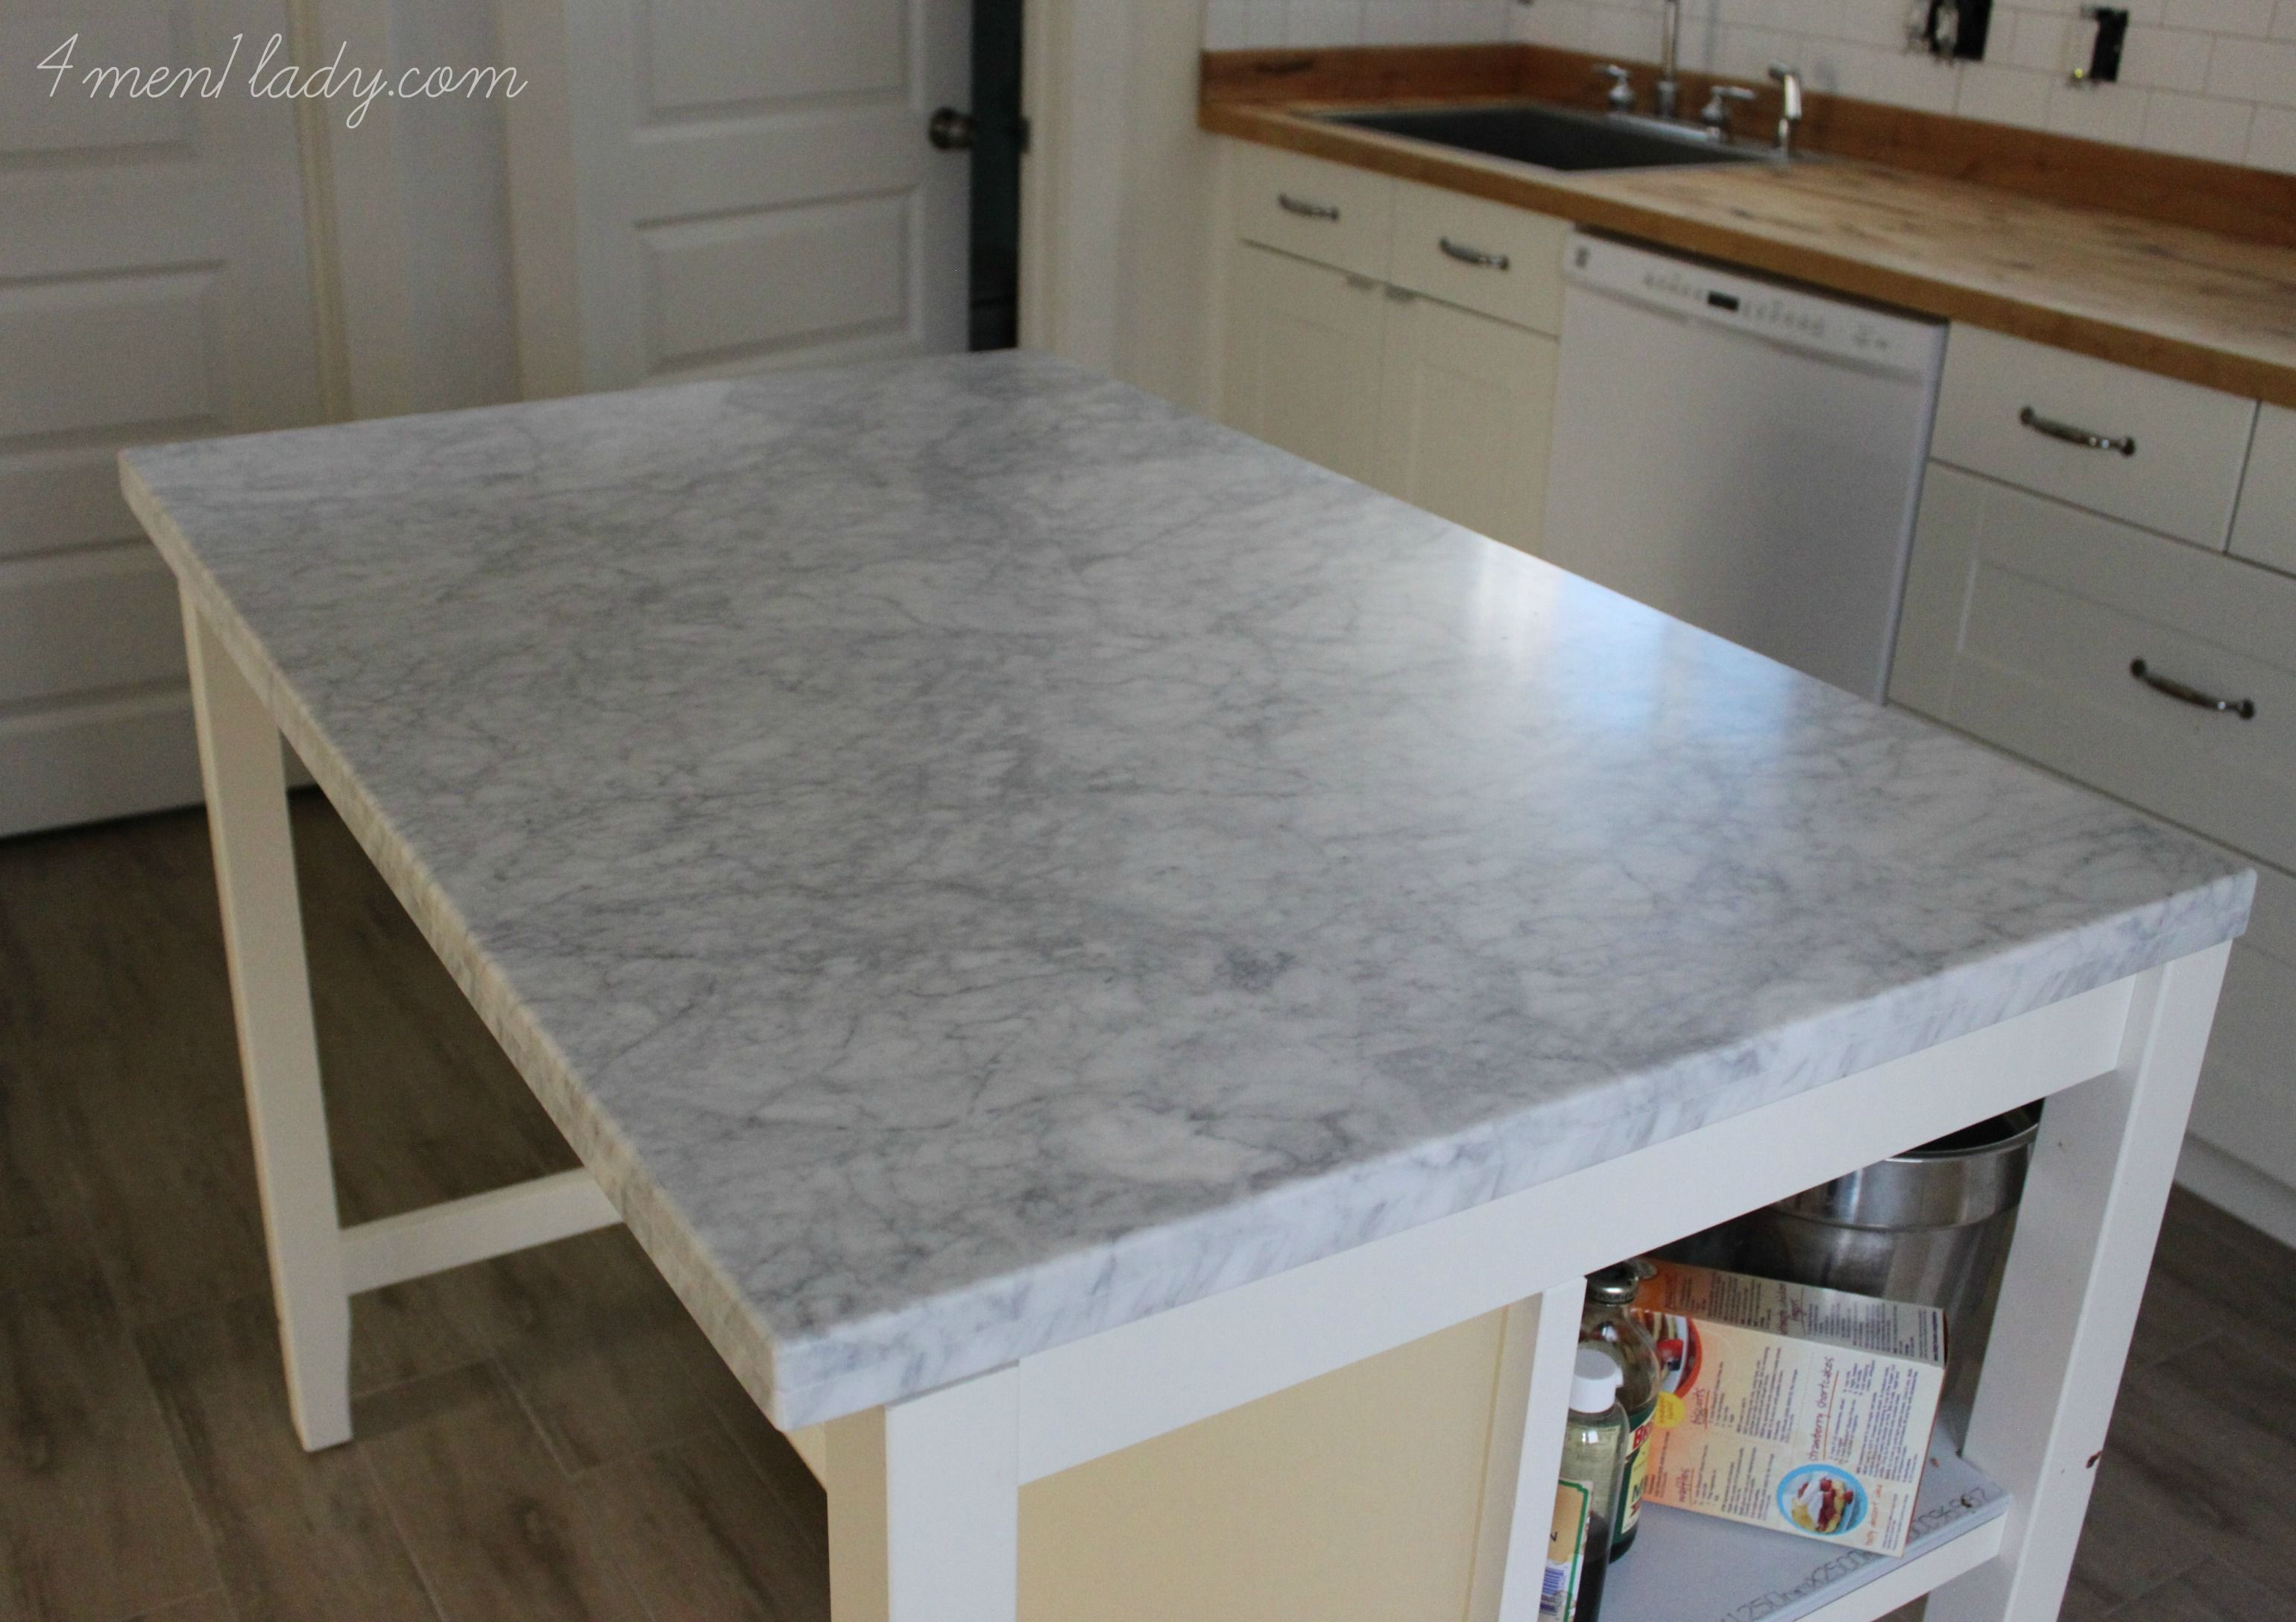 Ikea Stenstorp Kitchen Island Hack Diamonds Ain T Got